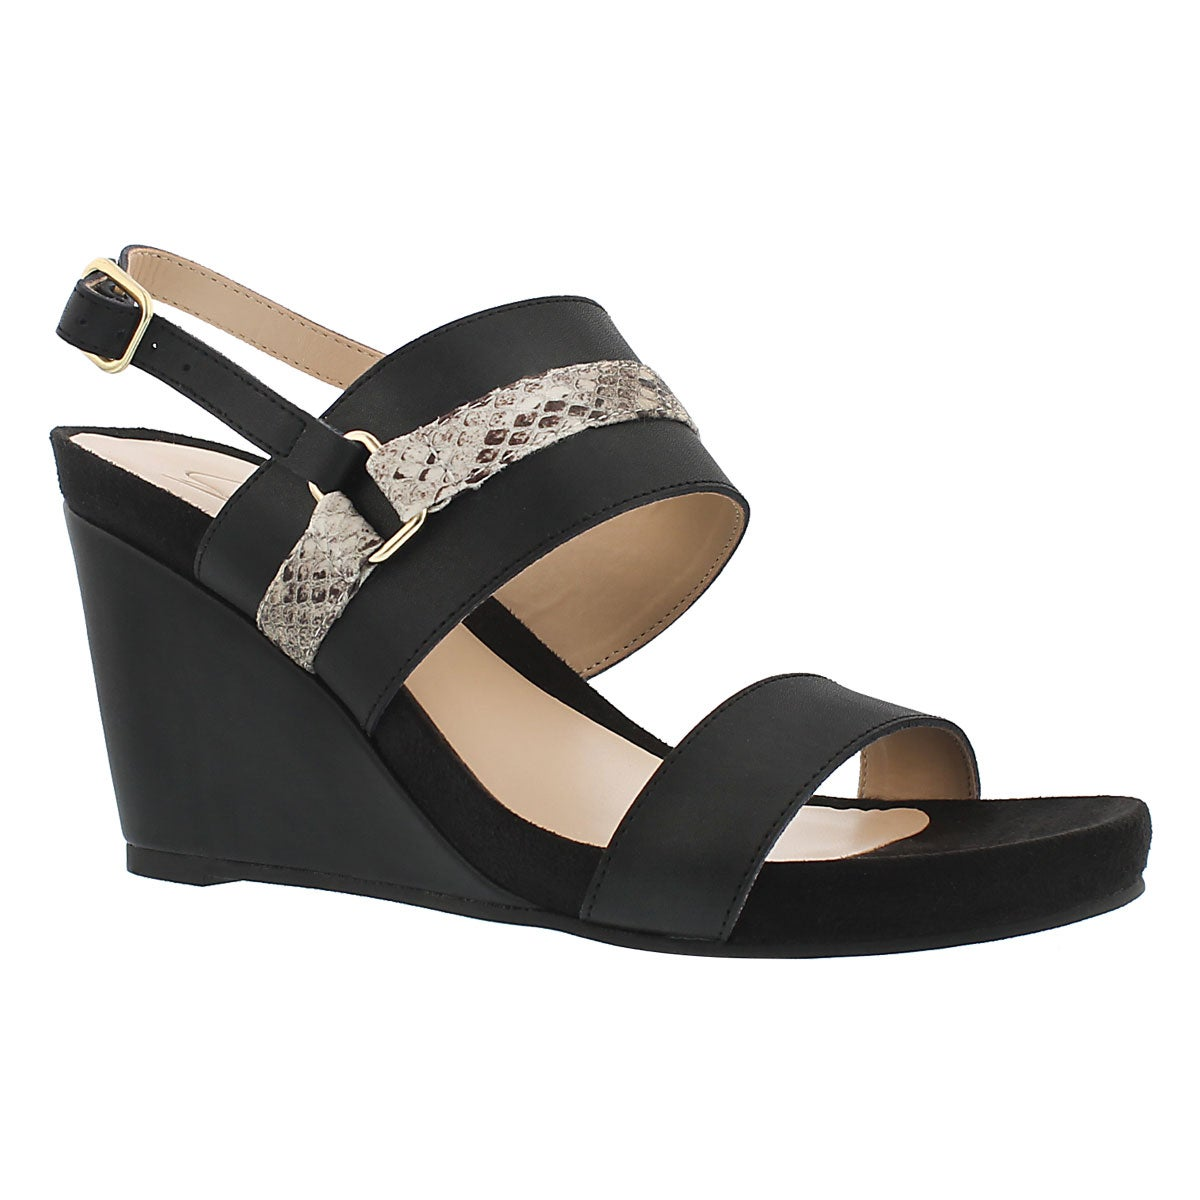 Lds Gili blk mem. foam wedge sandal